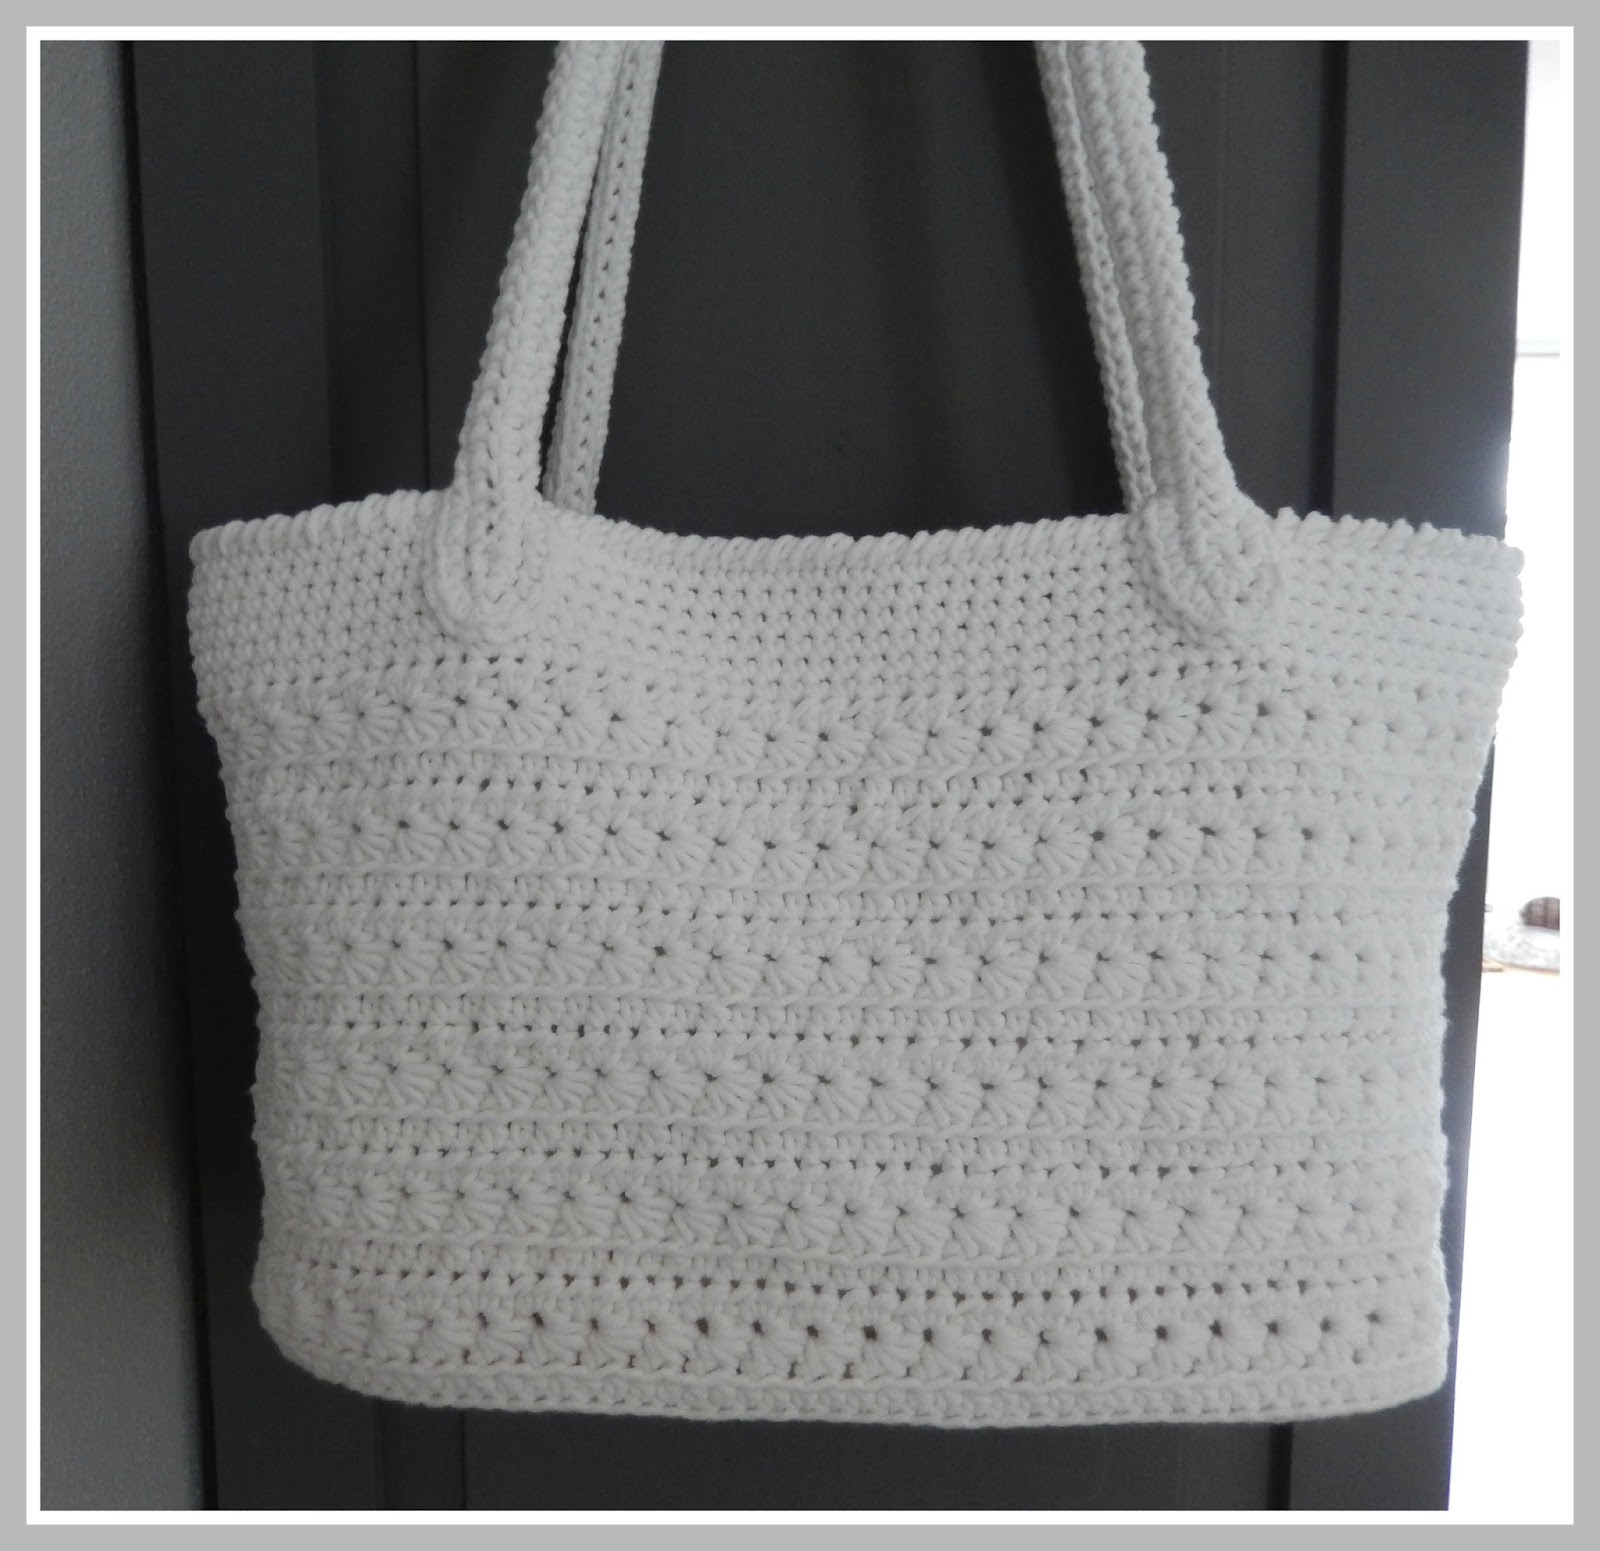 Little Sweet Things De Sas Zomer Tas